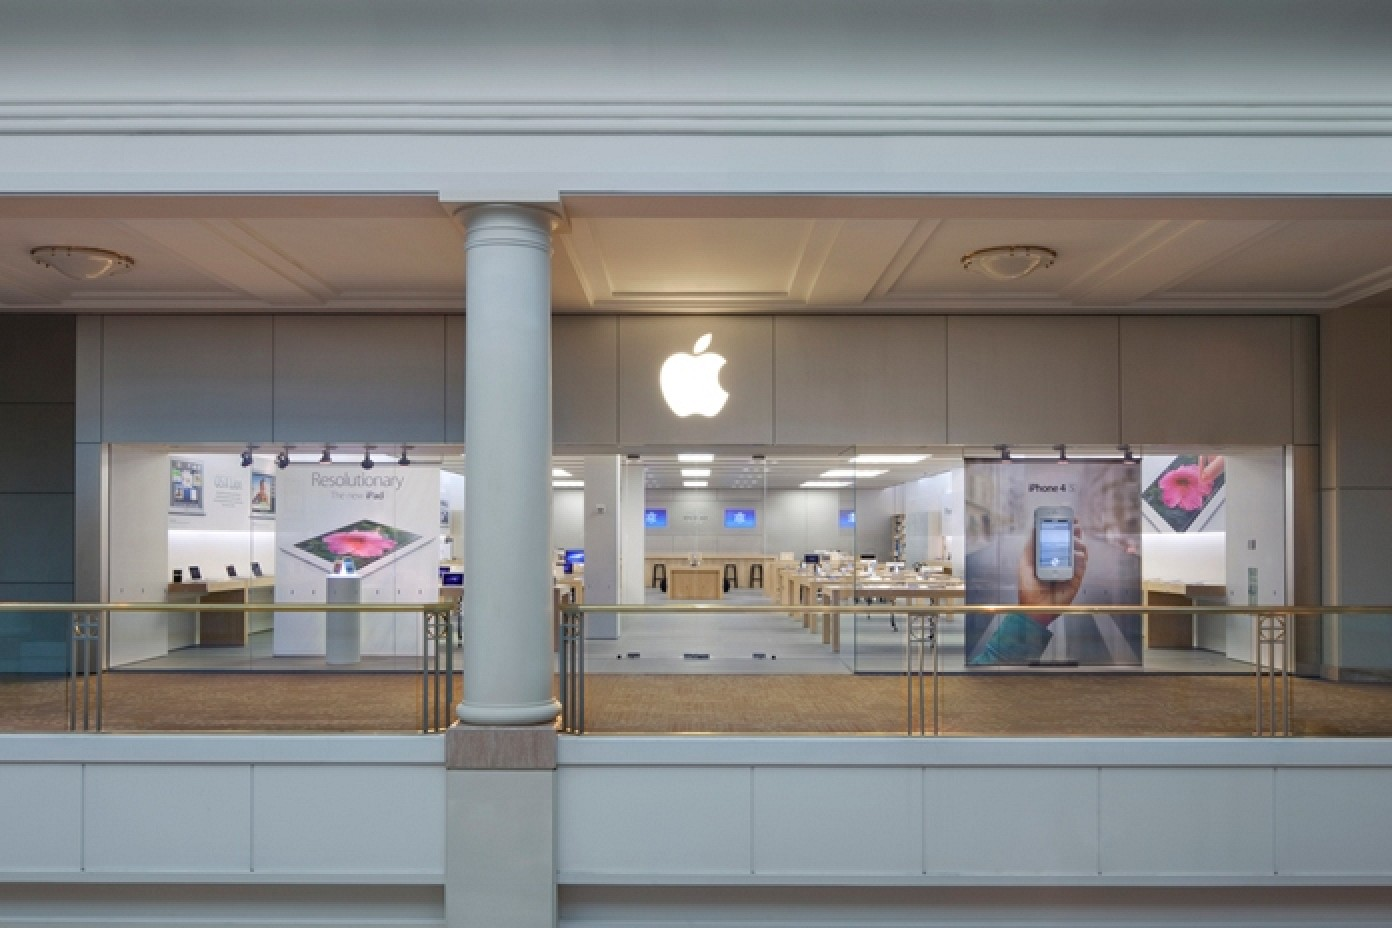 Apple Stores In Westchester And Charlotte Closing During Renovations